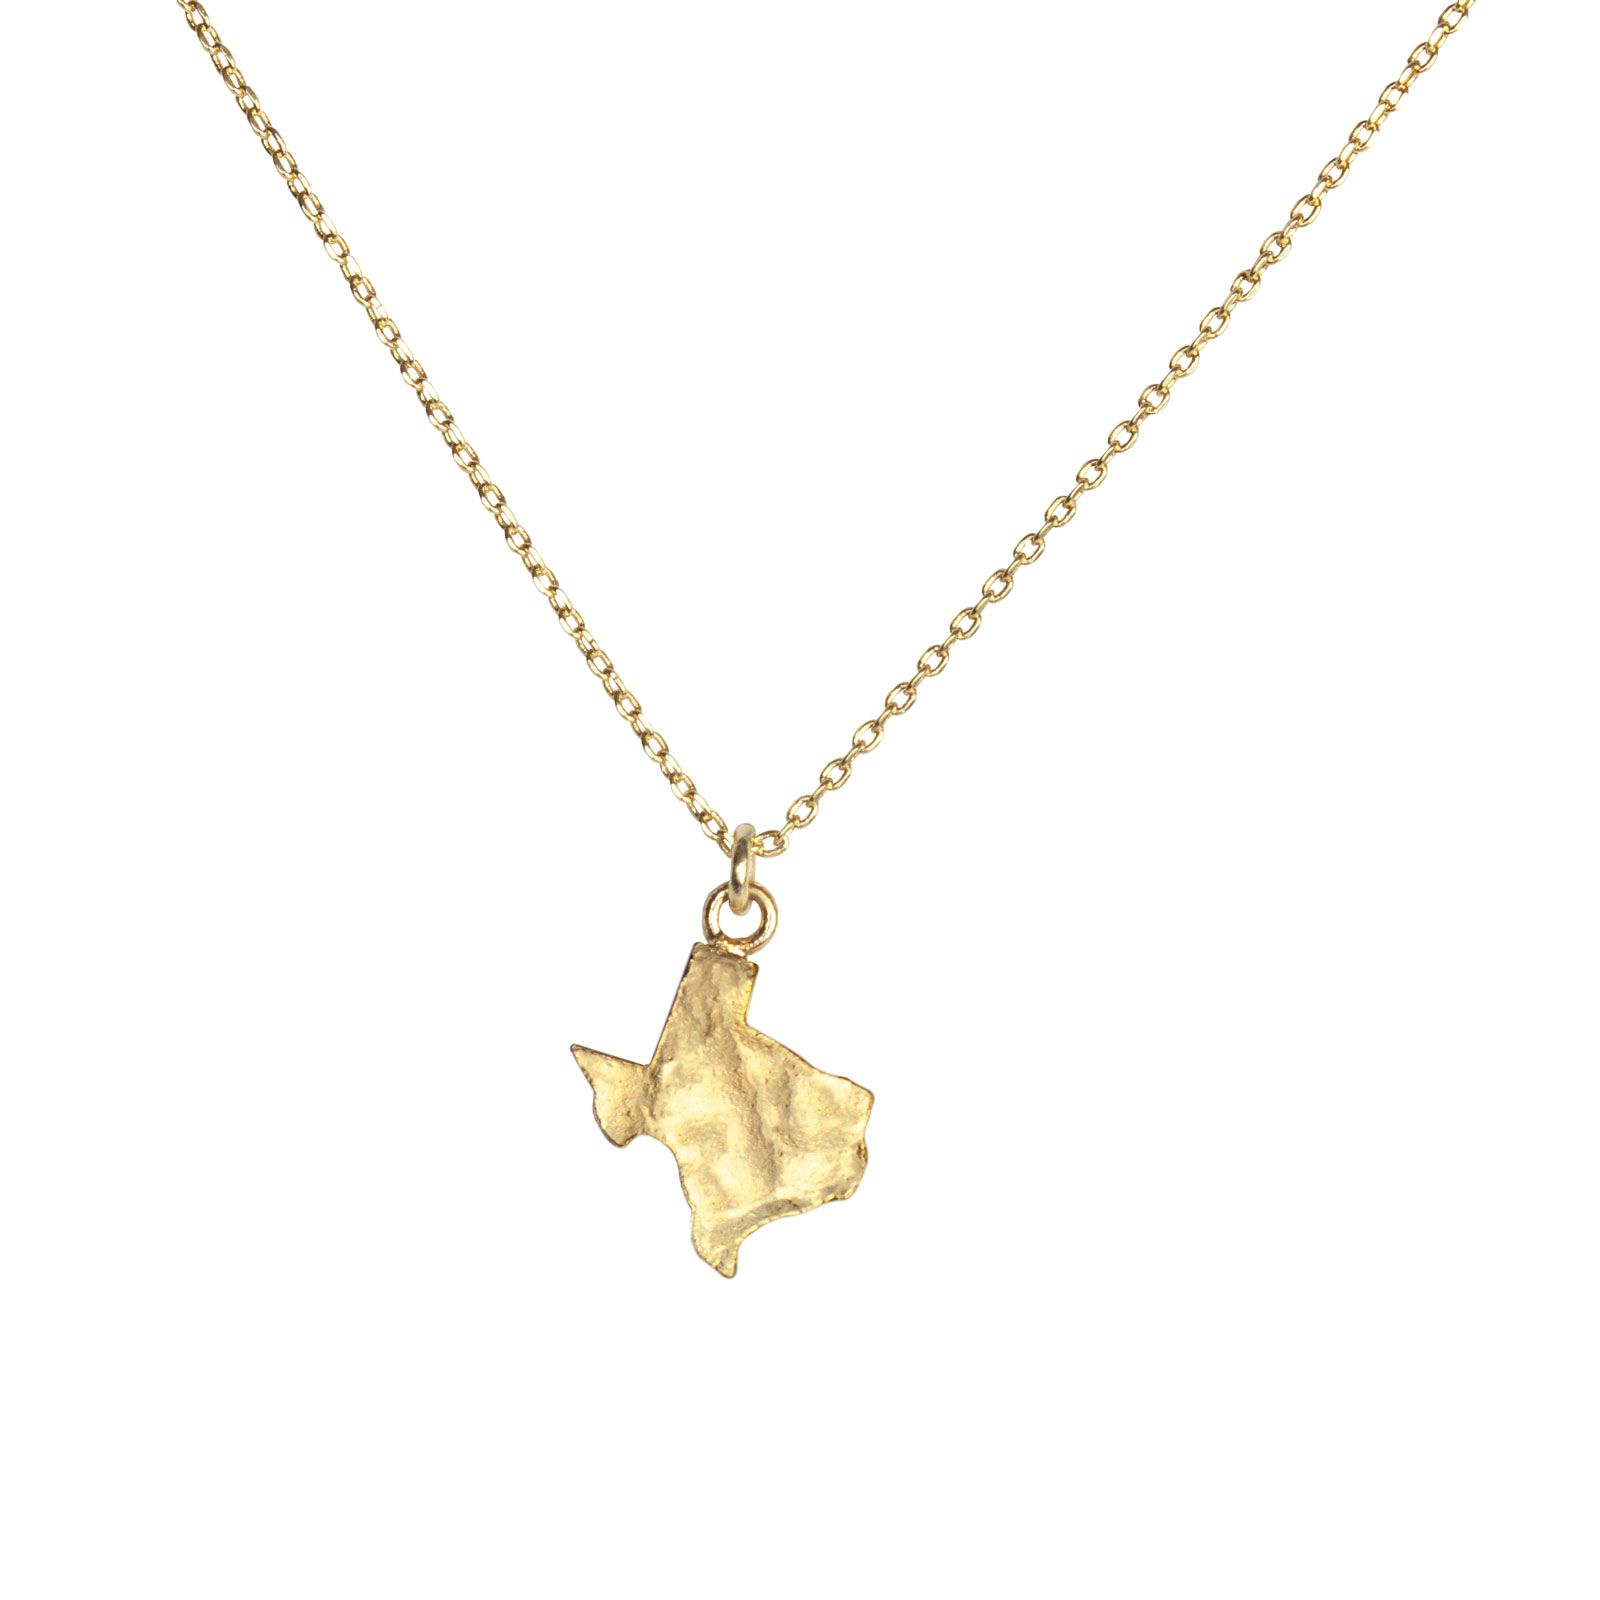 Texas Hammered Gold Necklace